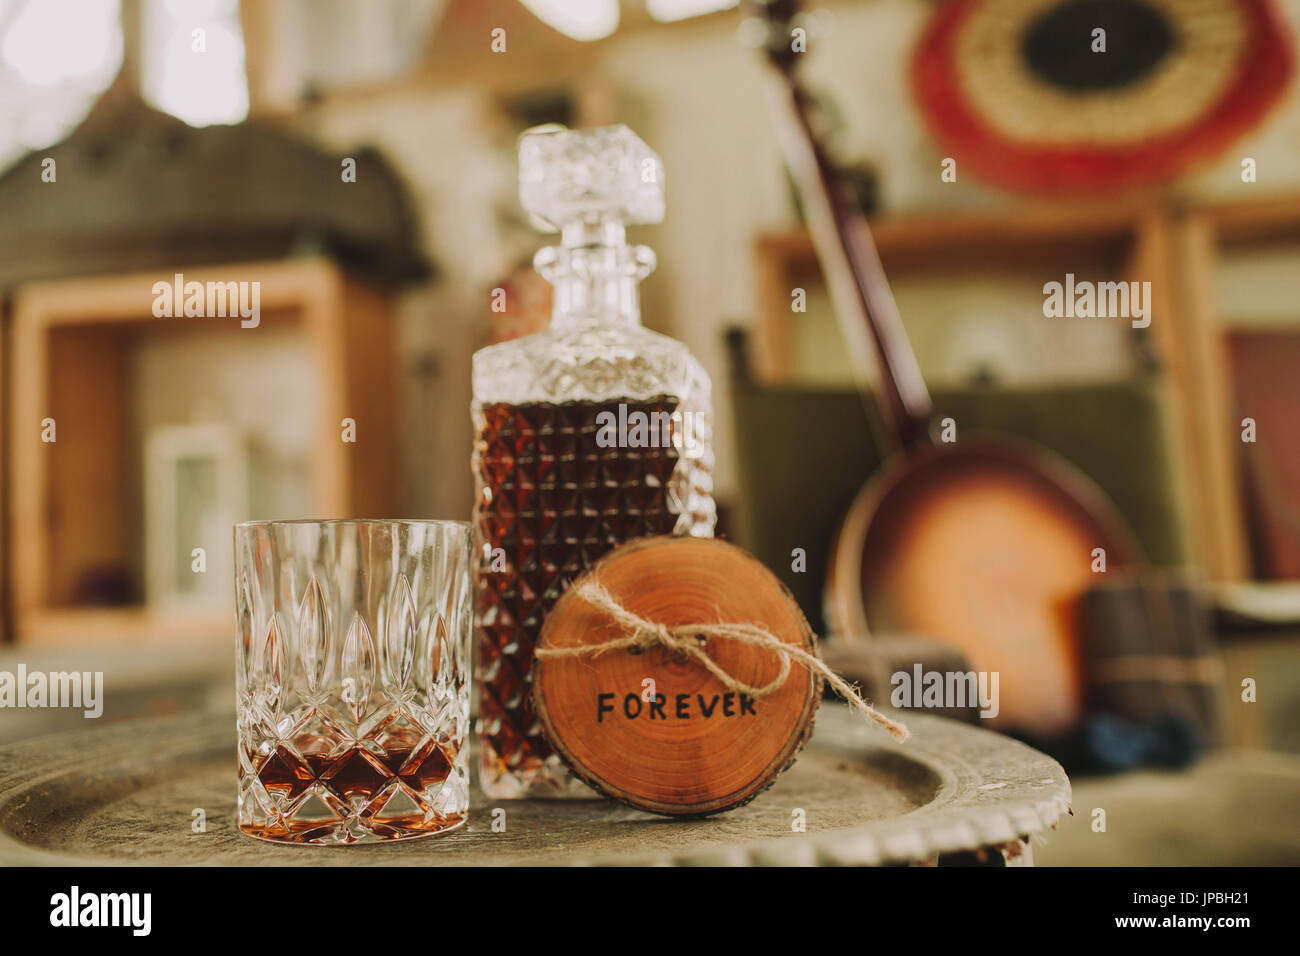 Stilllife, wedding, table with whisky and sign 'Forever', symbol, nervousness, tension, - Stock Image